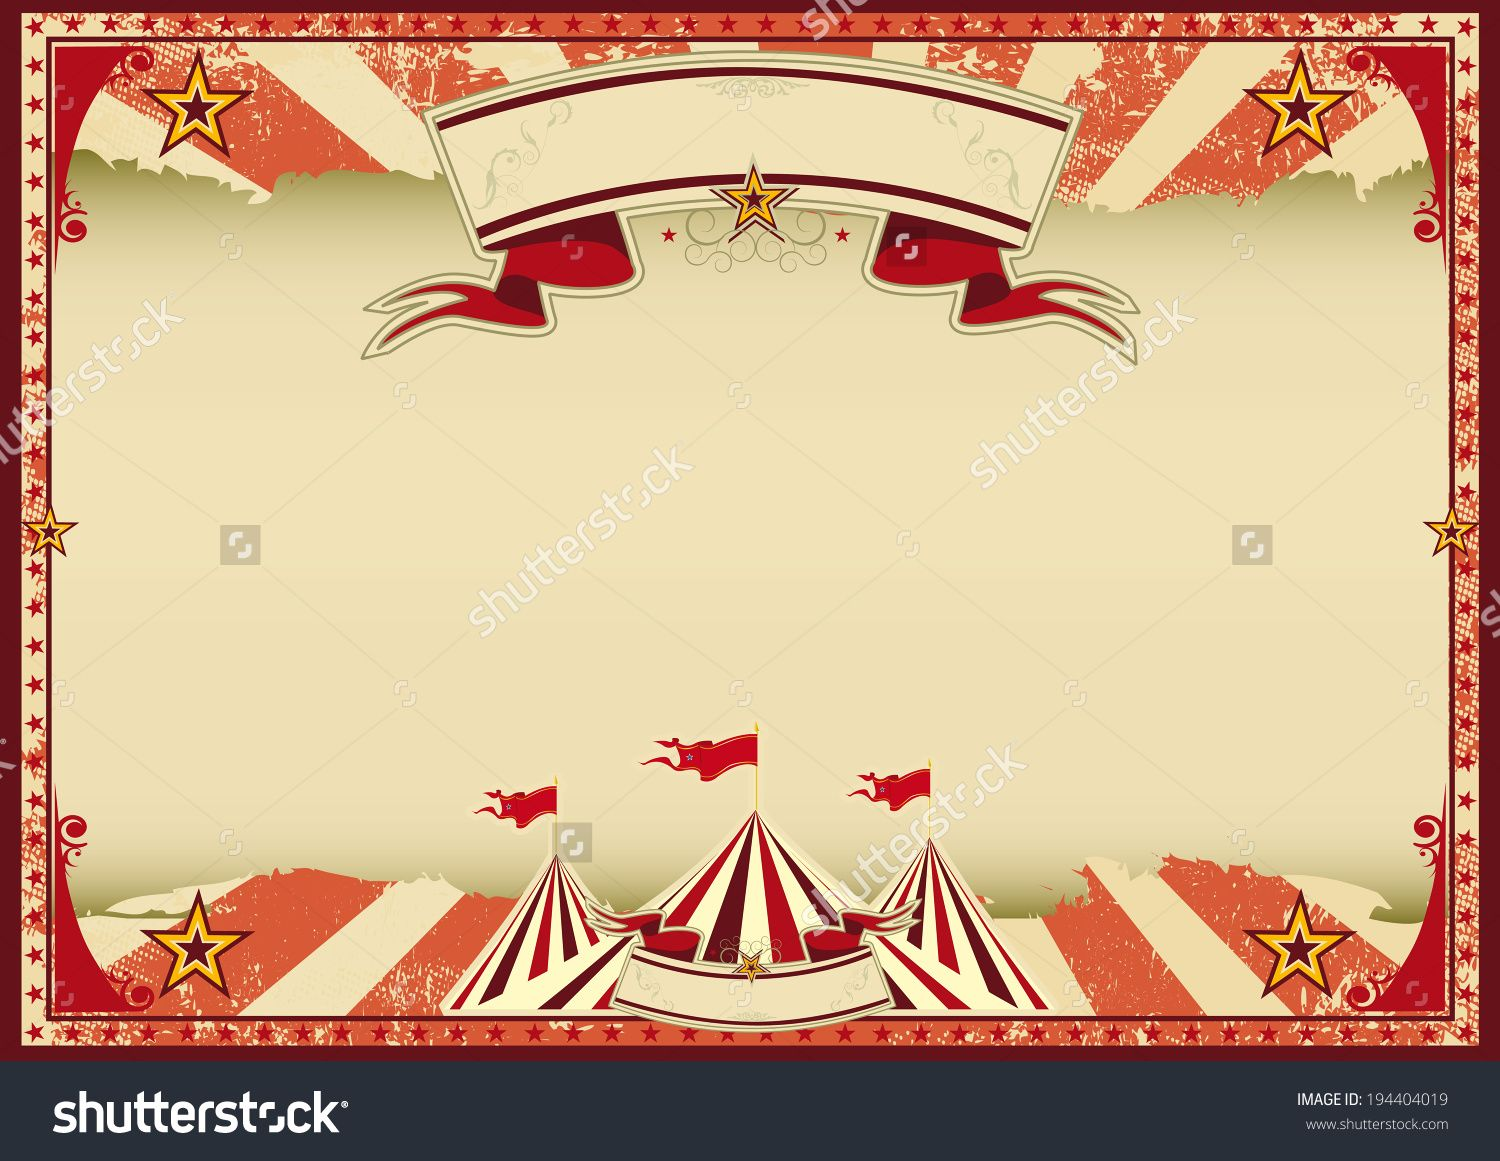 Vintage Circus Poster Background Horizontal Red Circus ...